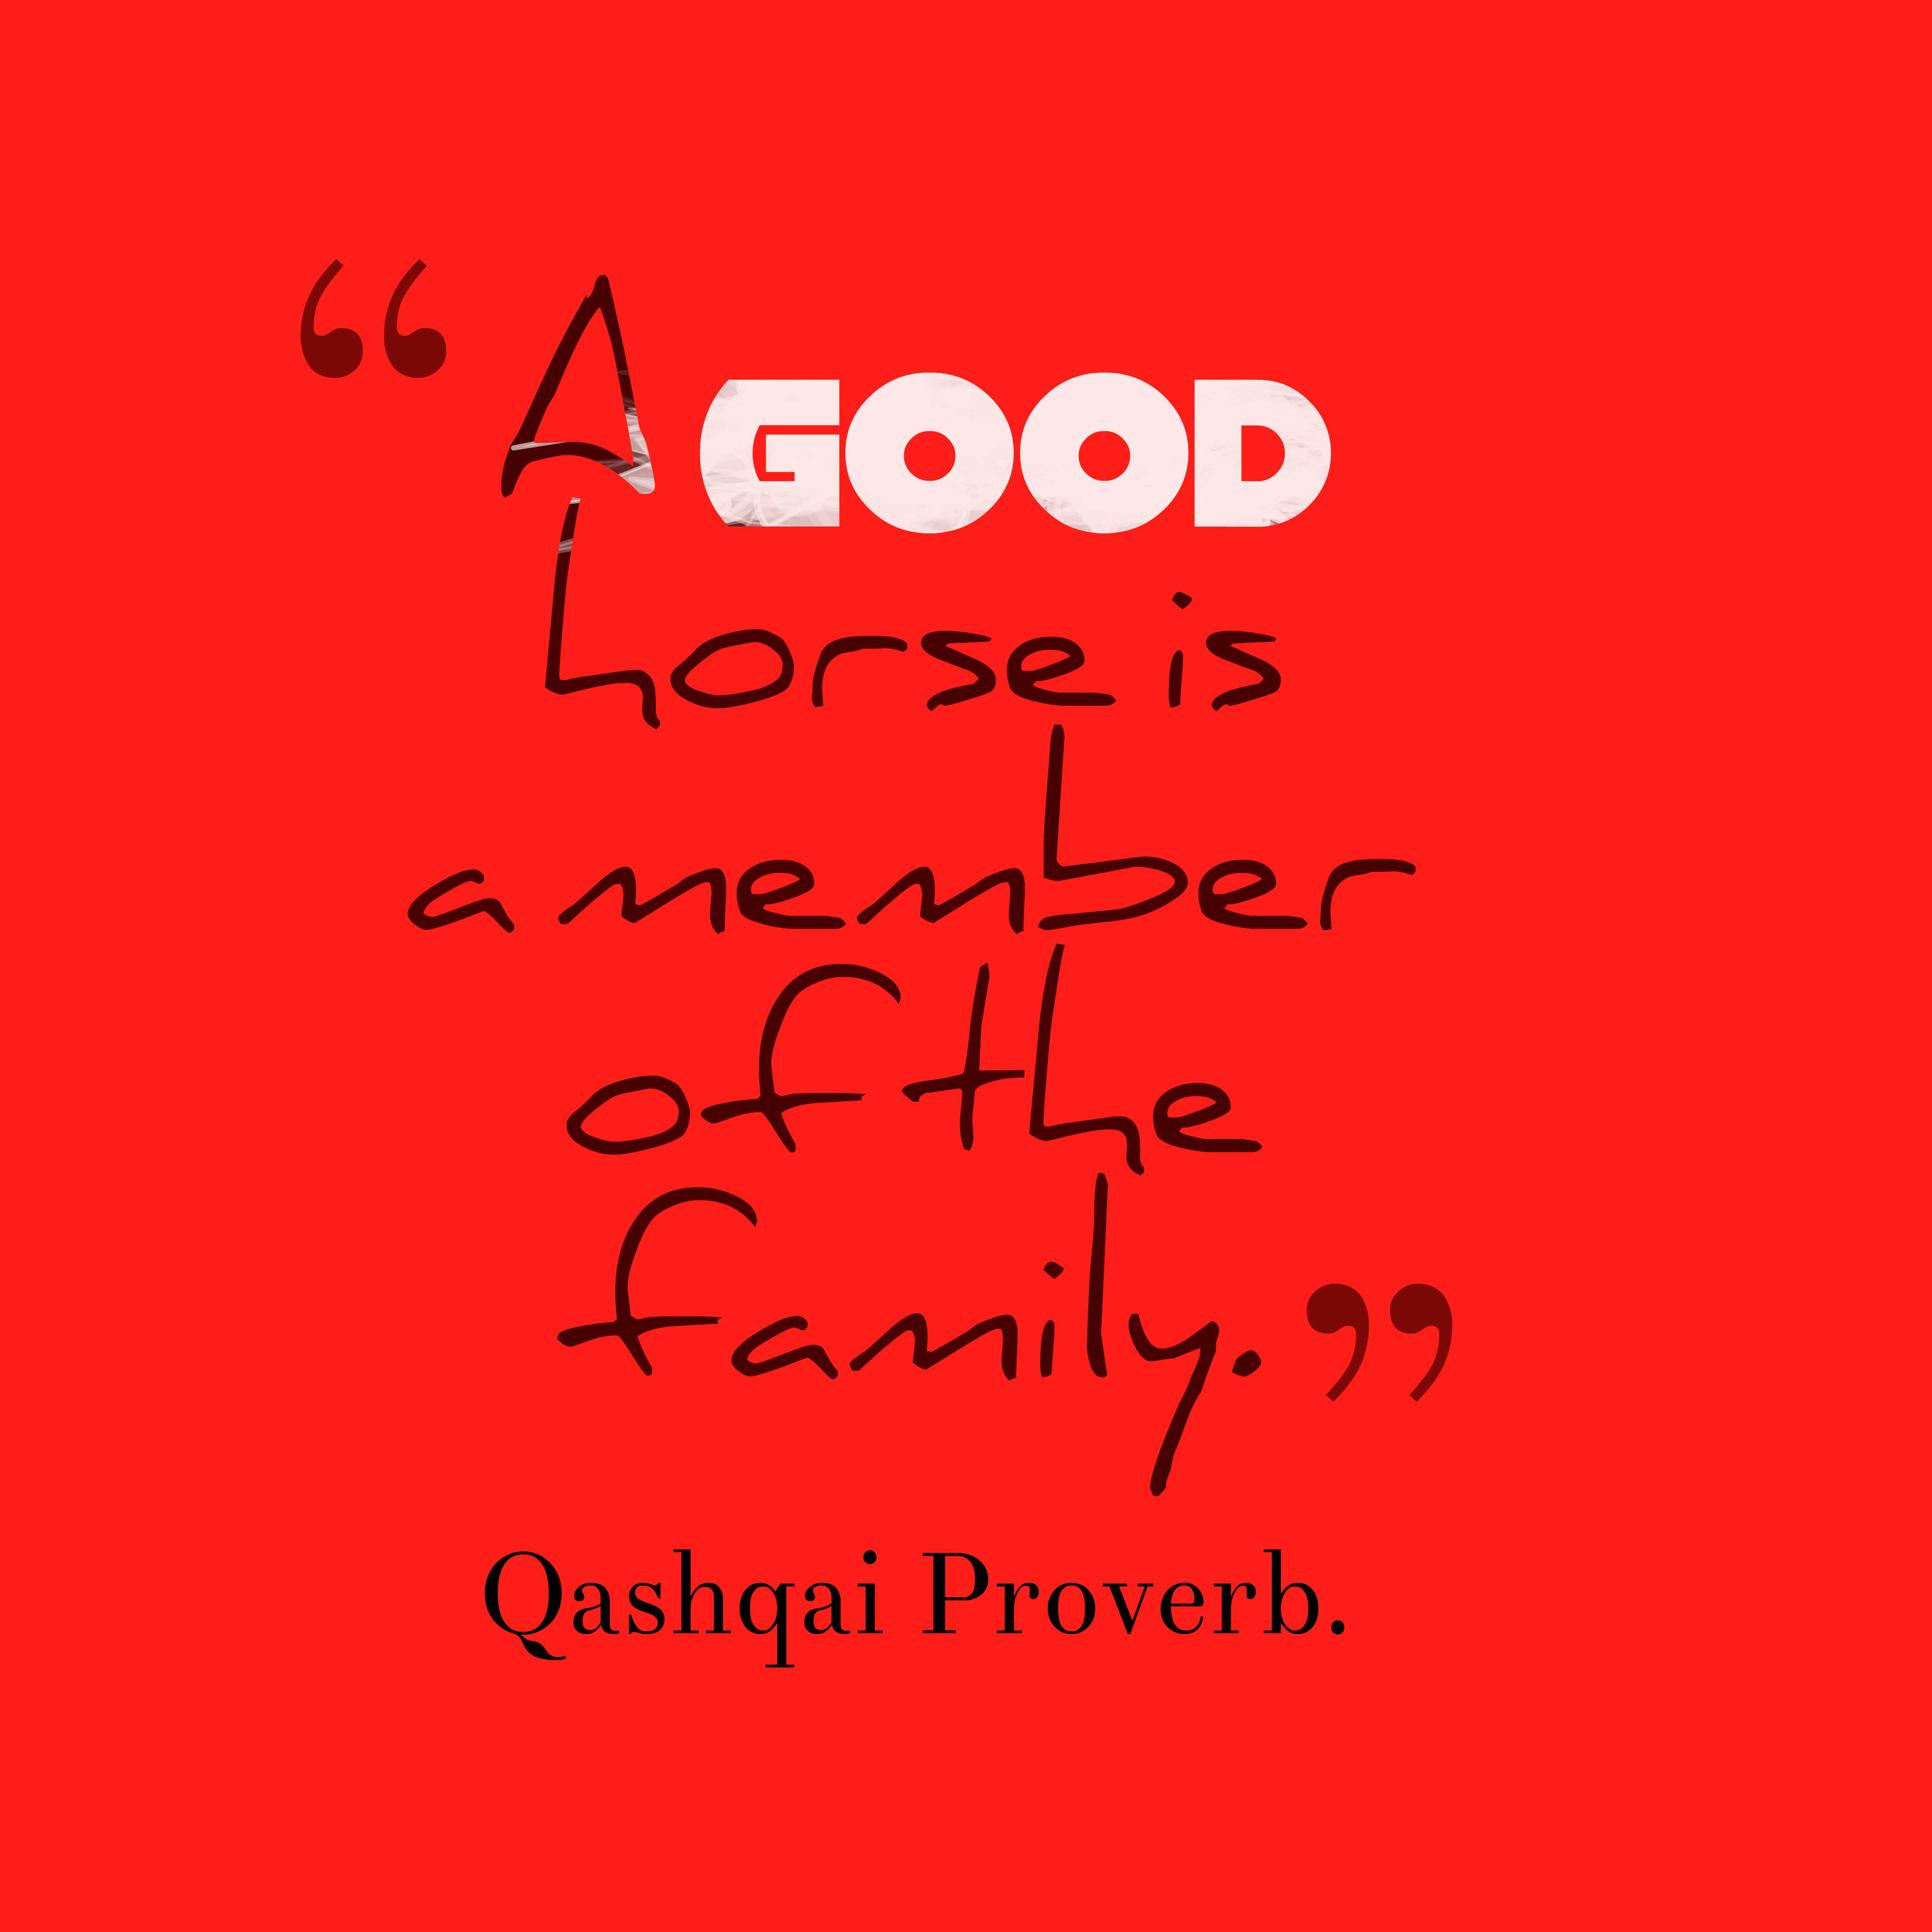 Picture Qashqai proverb about member. | QuotesCover.com